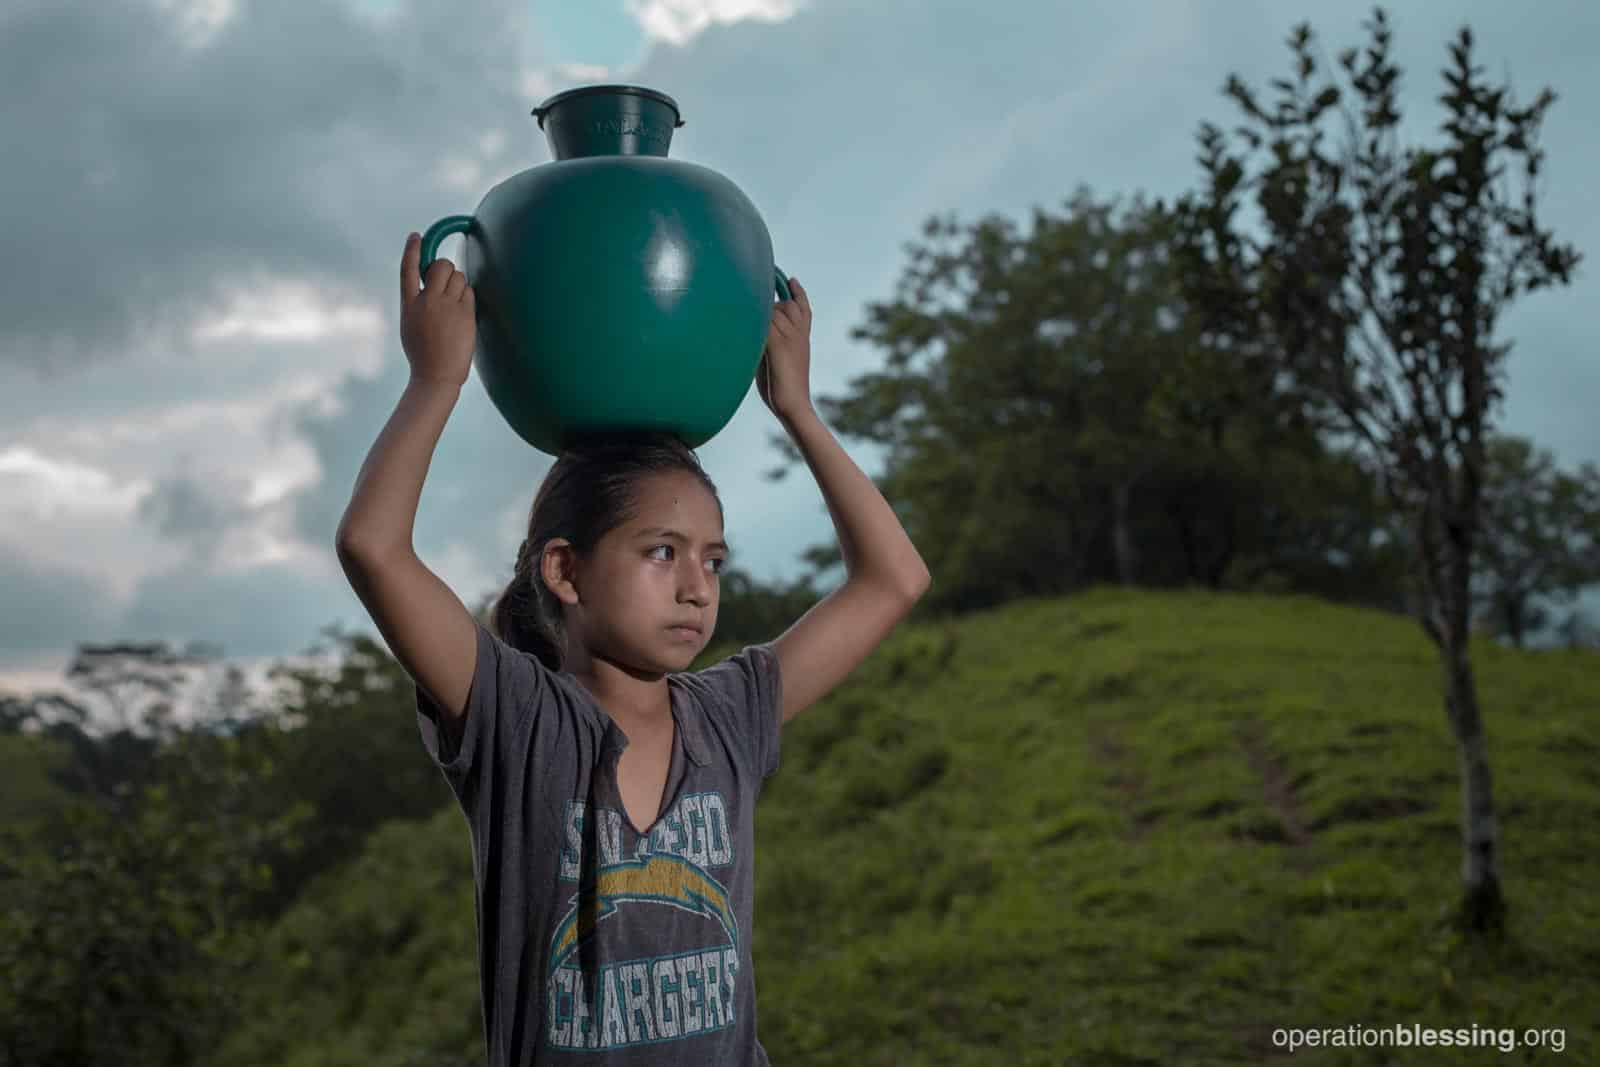 The trek for clean water was long and tiring, especially for 11-year-old Nelly who was often ill from drinking unsafe water.